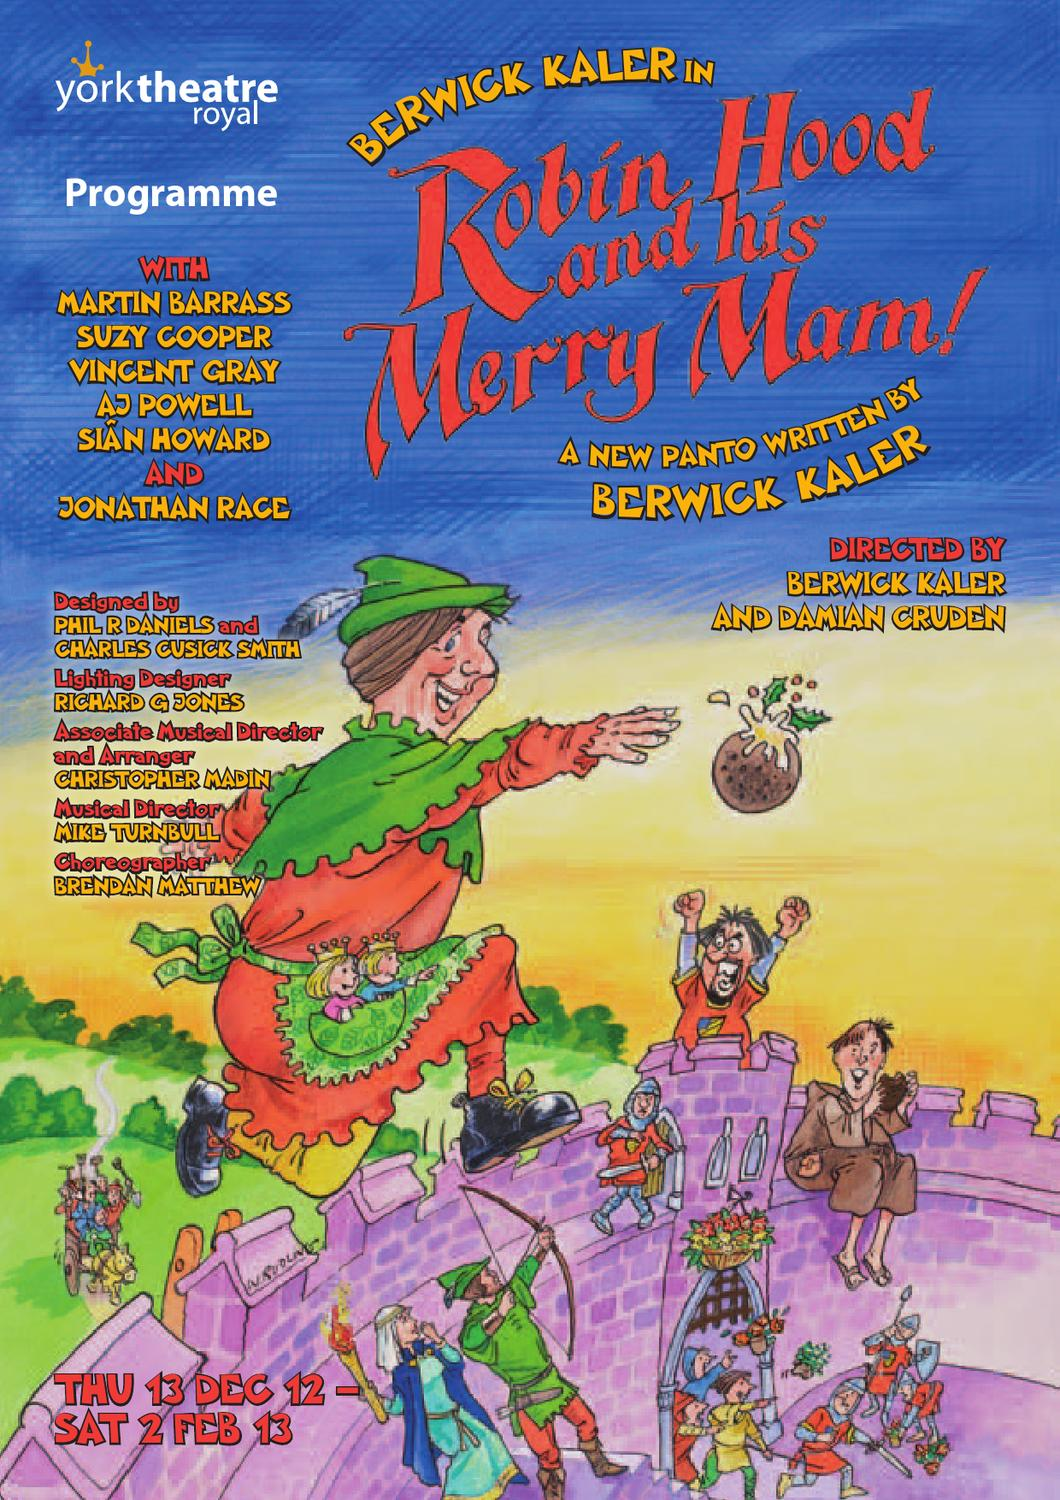 Robin Hood and His Merry Mam! programme by York Theatre